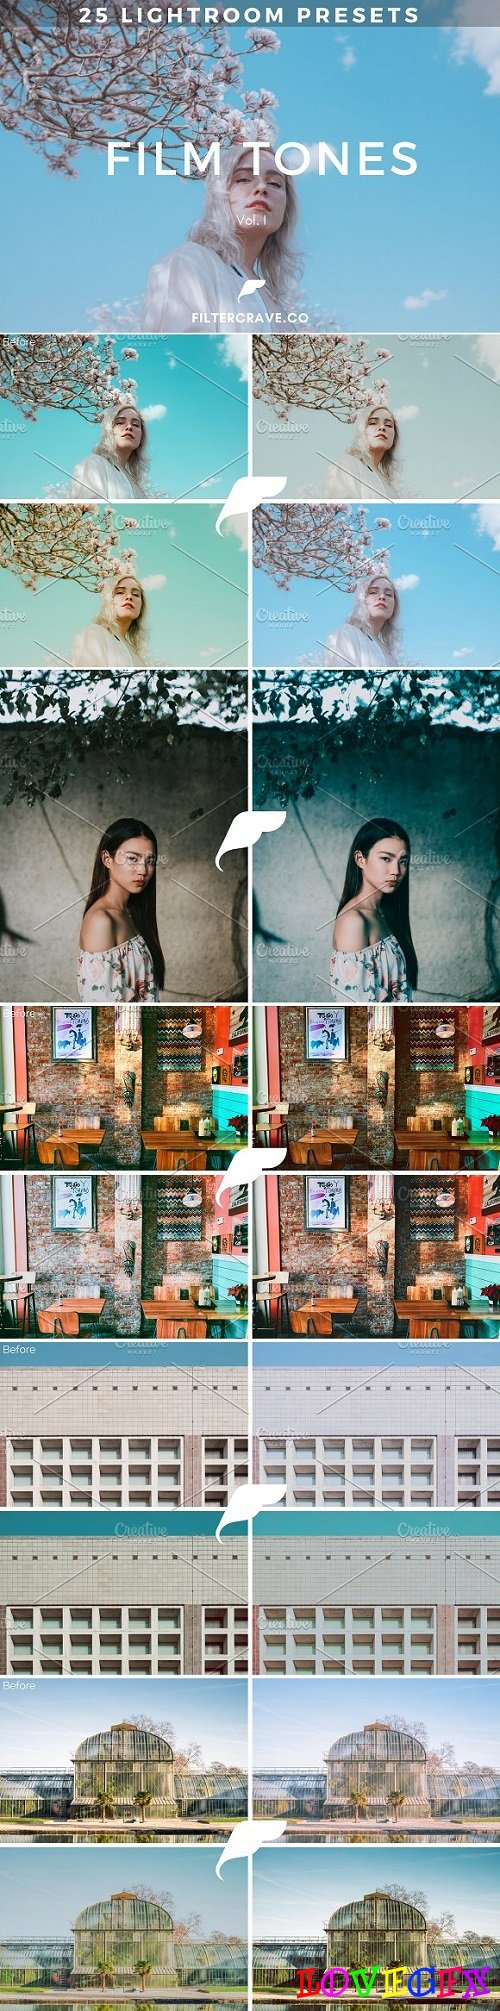 25 Film Tone Lightroom Presets I 1969137